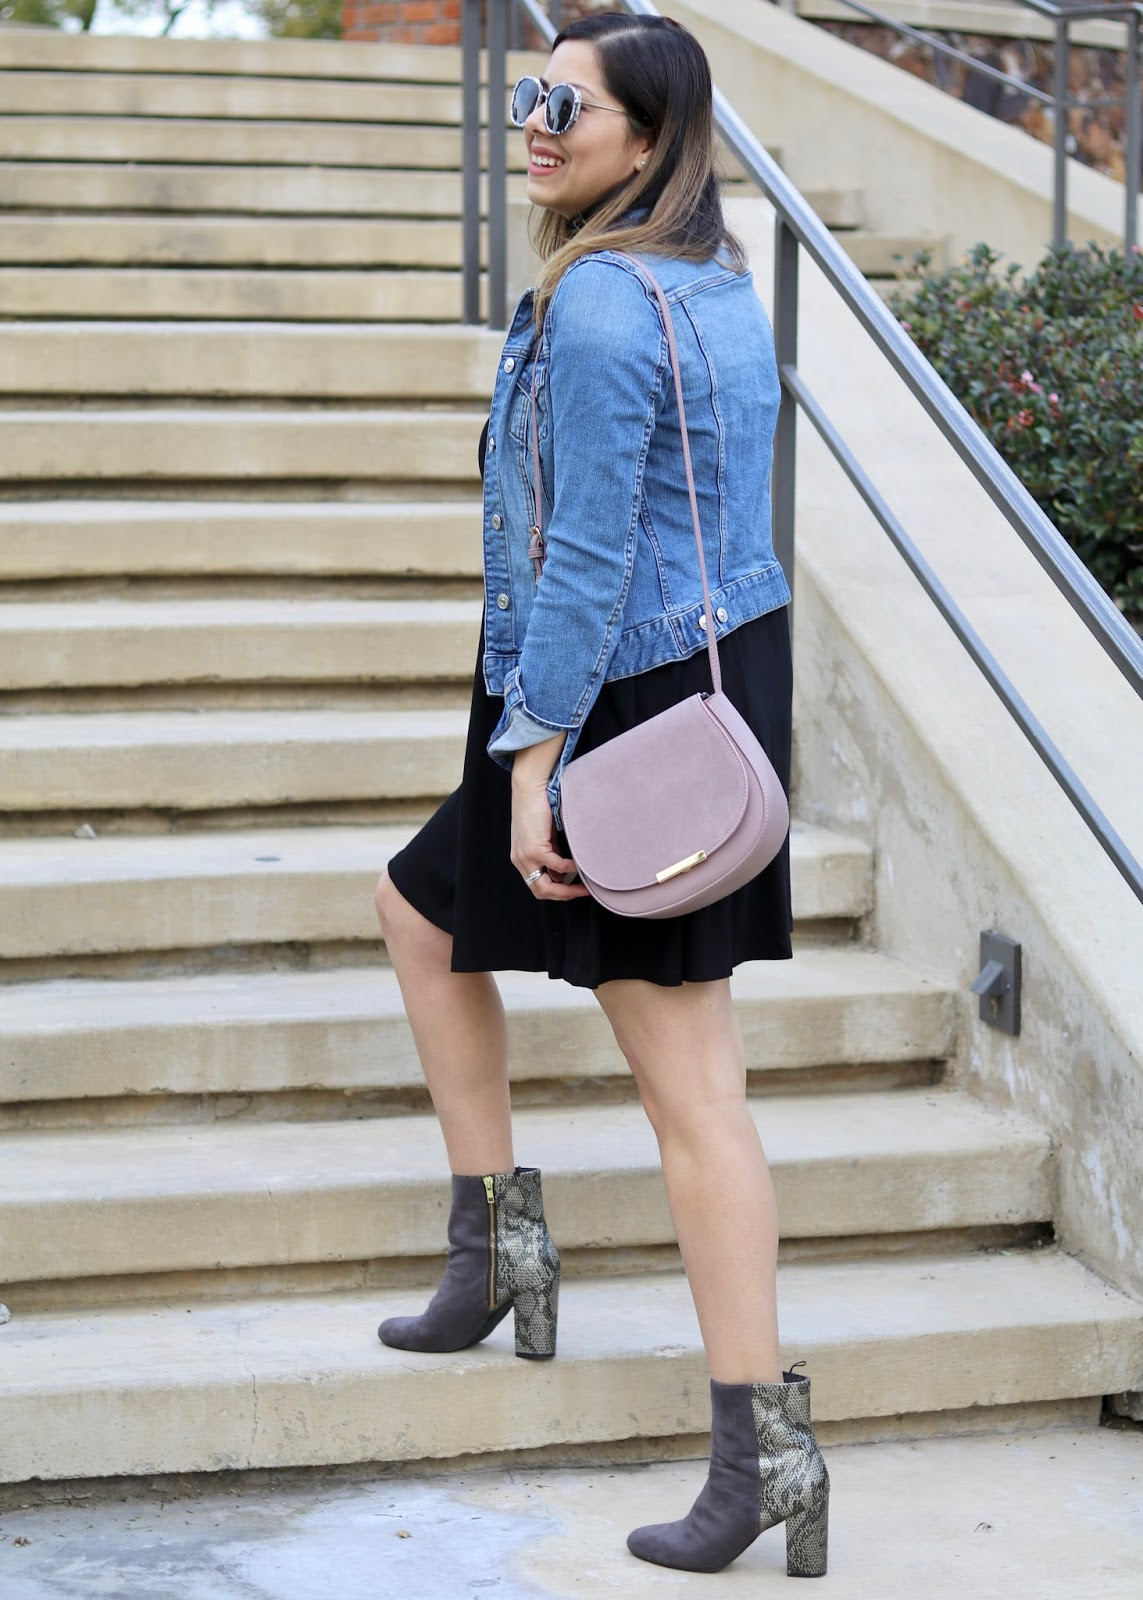 Turleneck LBD with Jean Jacket, comfy turtleneck dresses, mauve crossbod purse